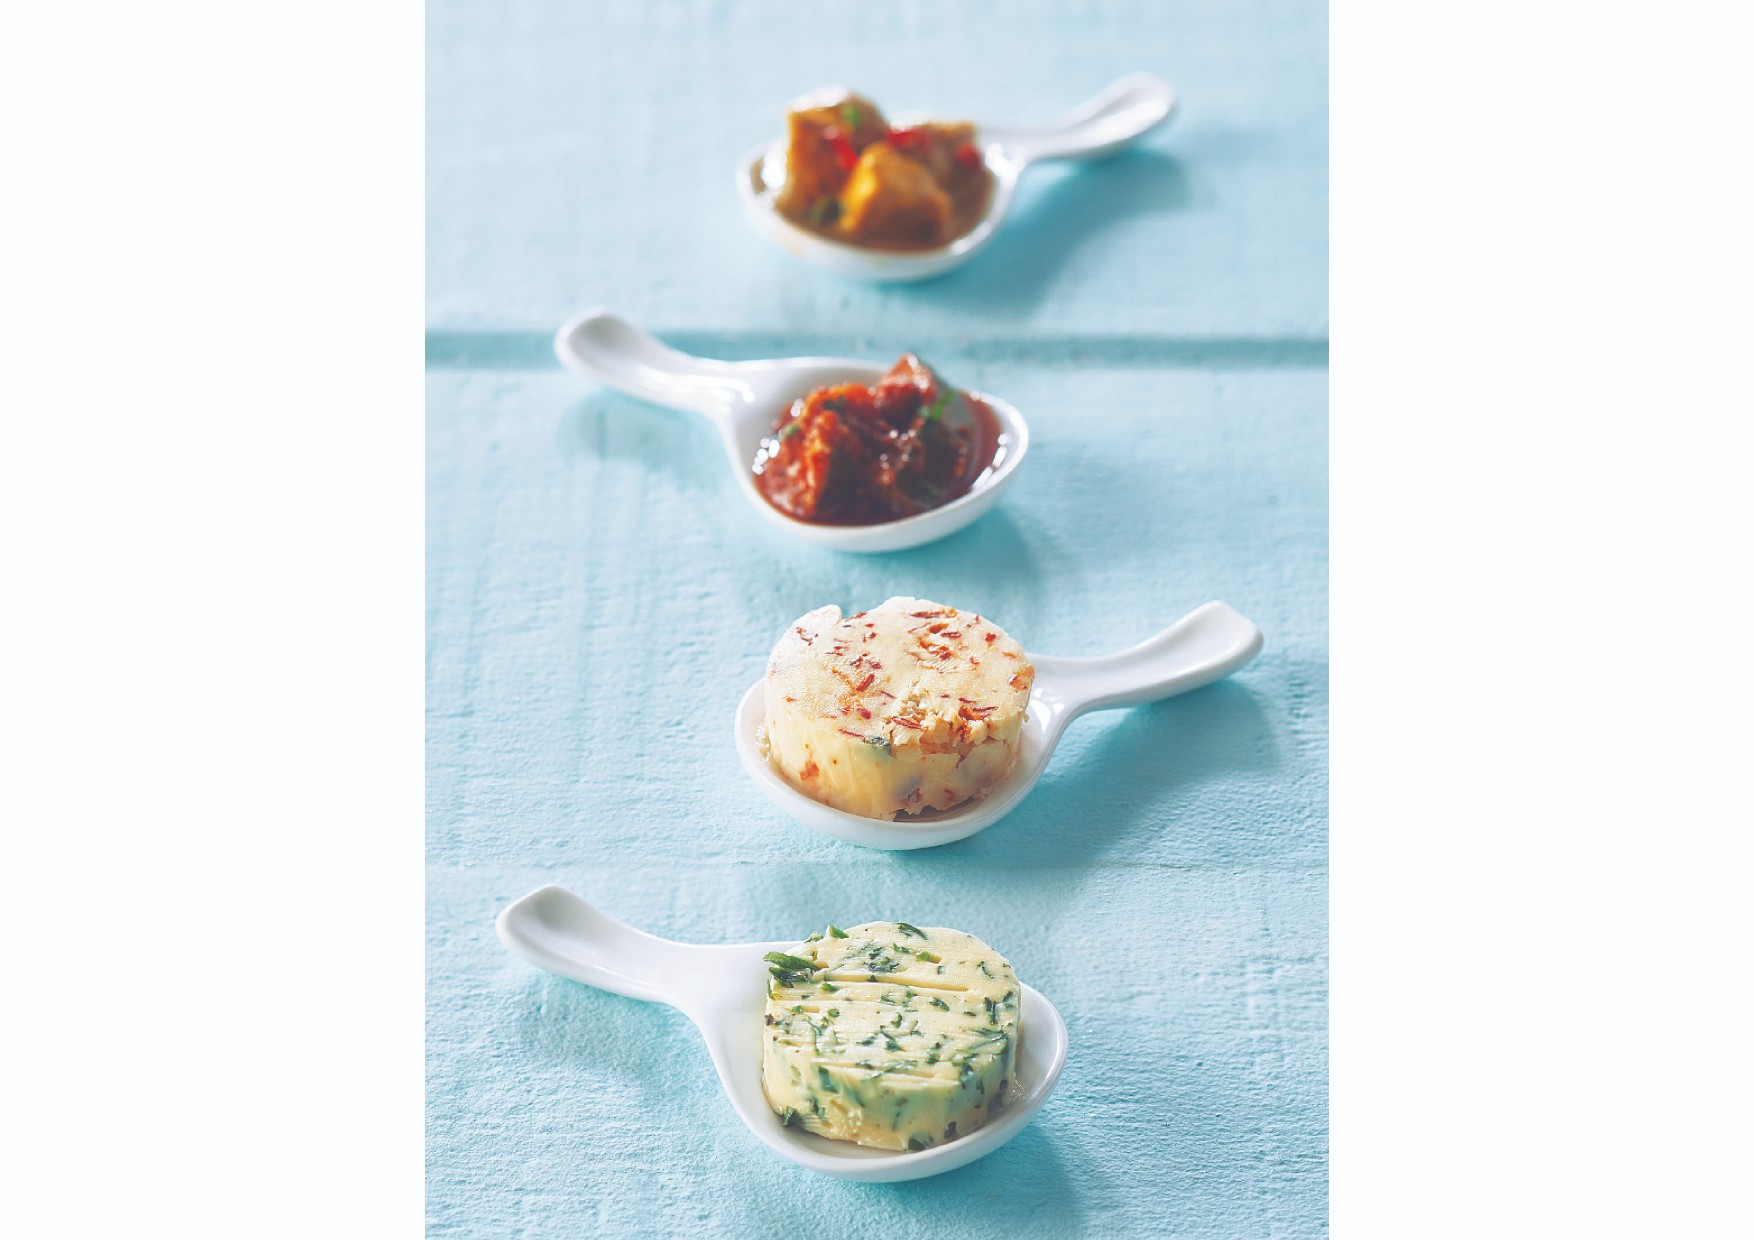 Spoon Dip Set Ceramic Spoons in White Colour by Songbird